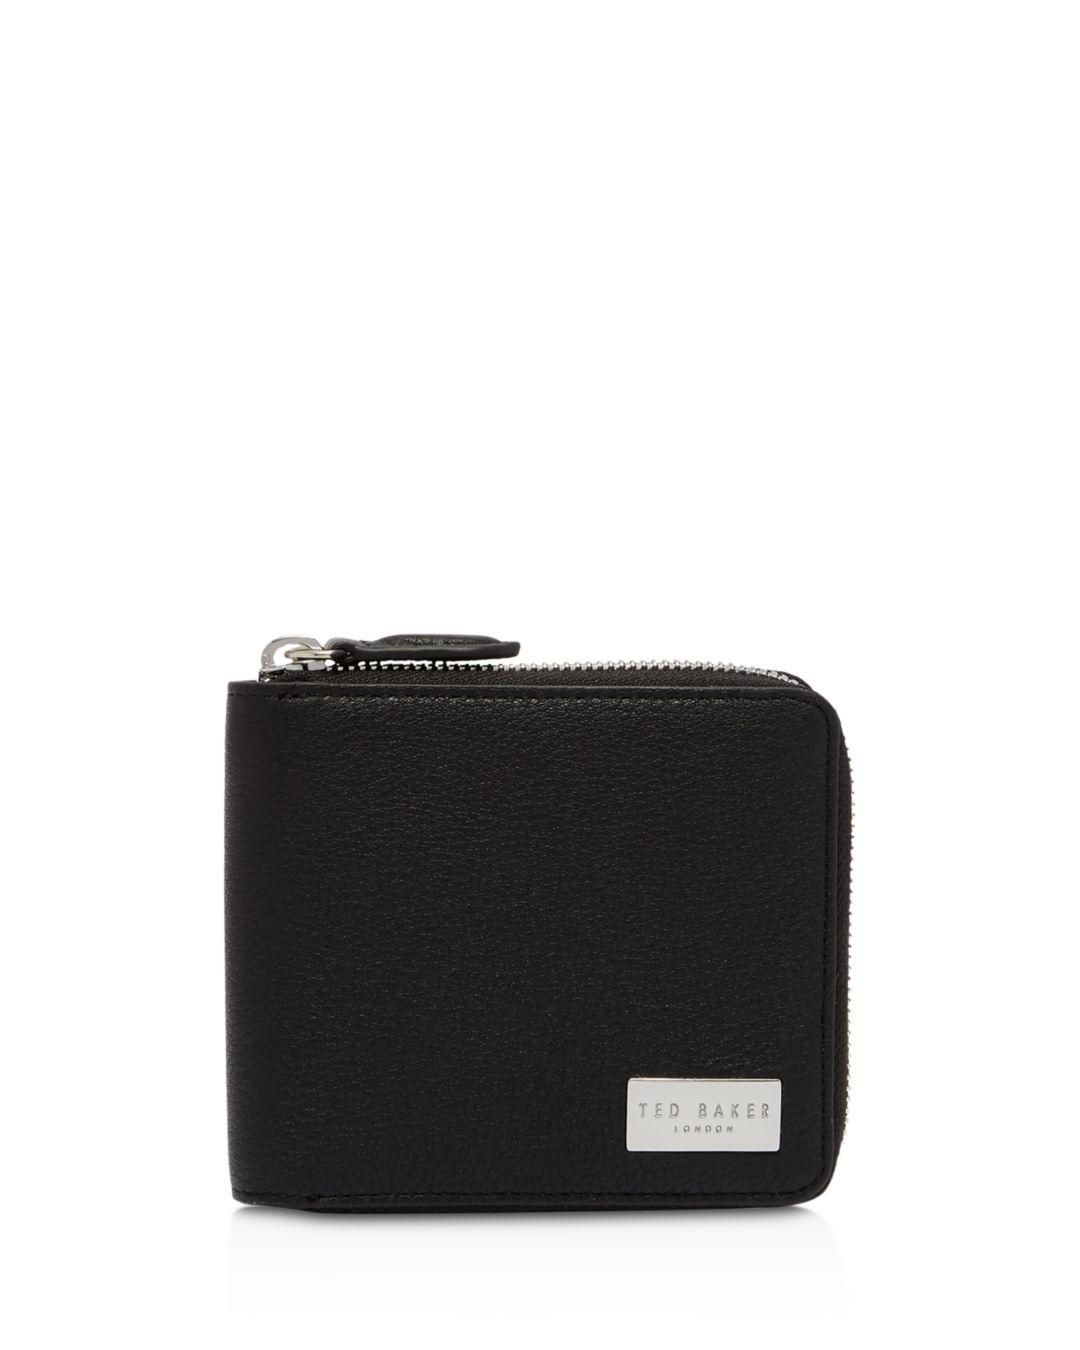 edce19a5df99e Lyst - Ted Baker Baits Zip Coin Wallet in Black for Men